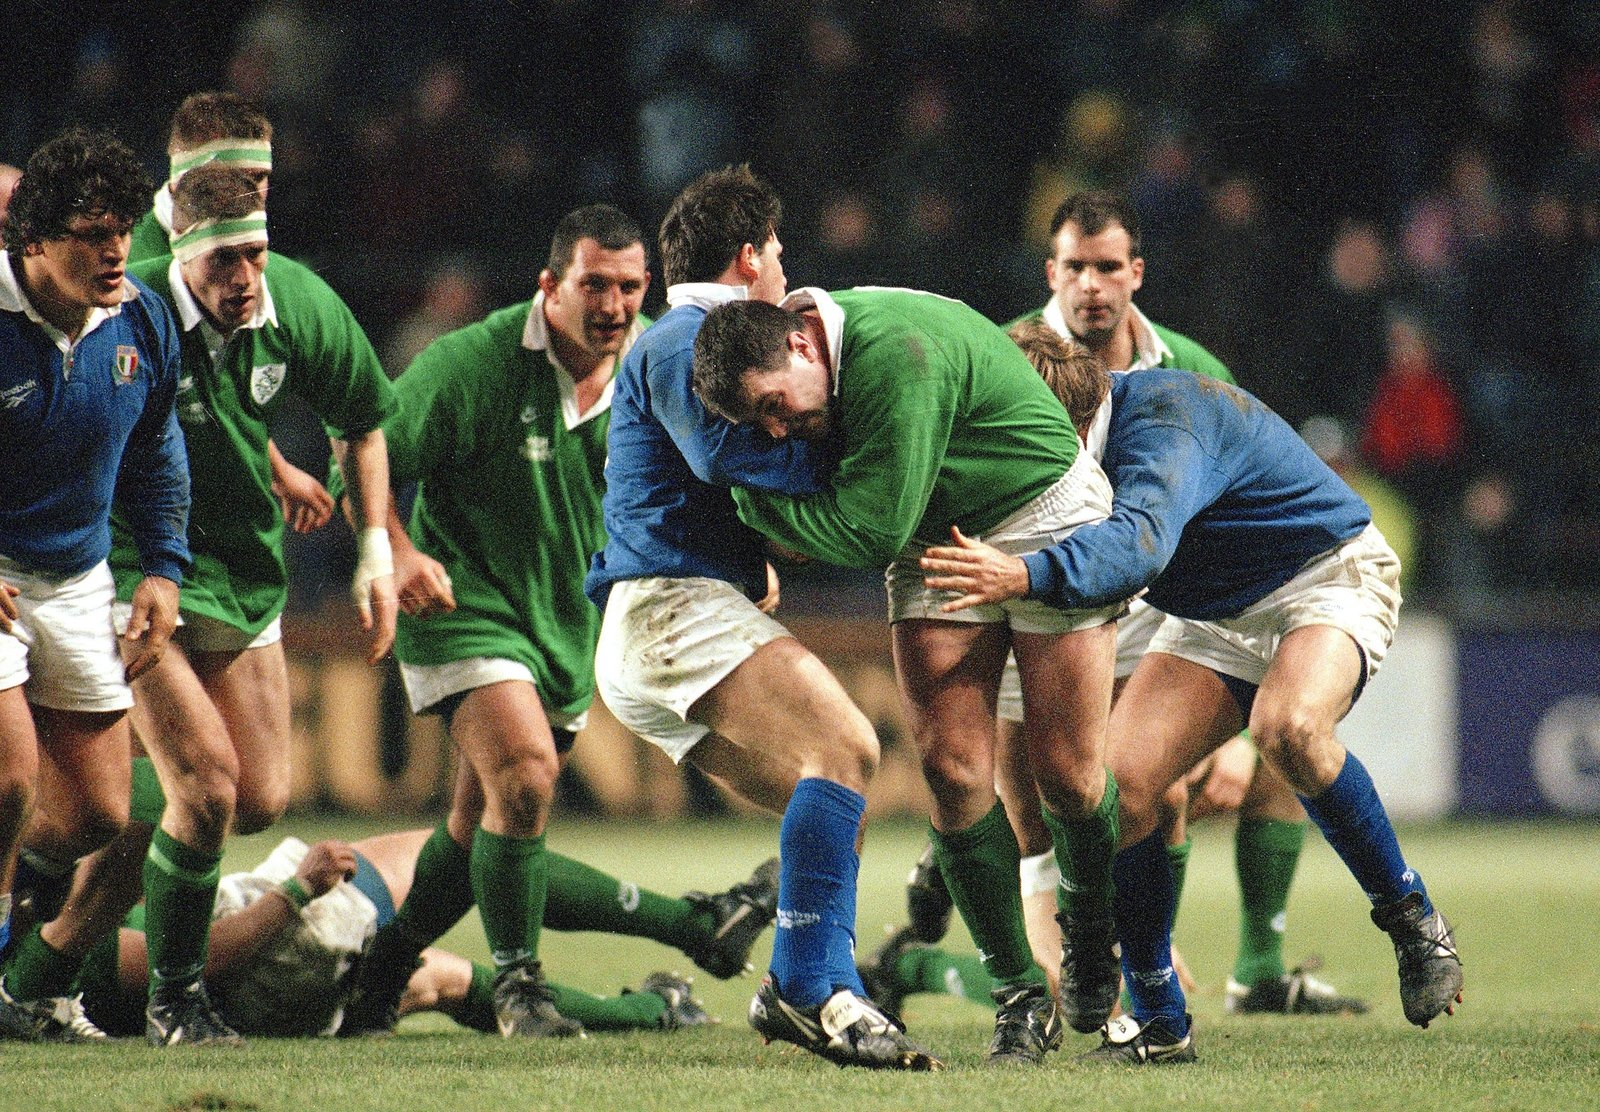 Image - Ireland and Italy during the Lansdowne Road game in 1997